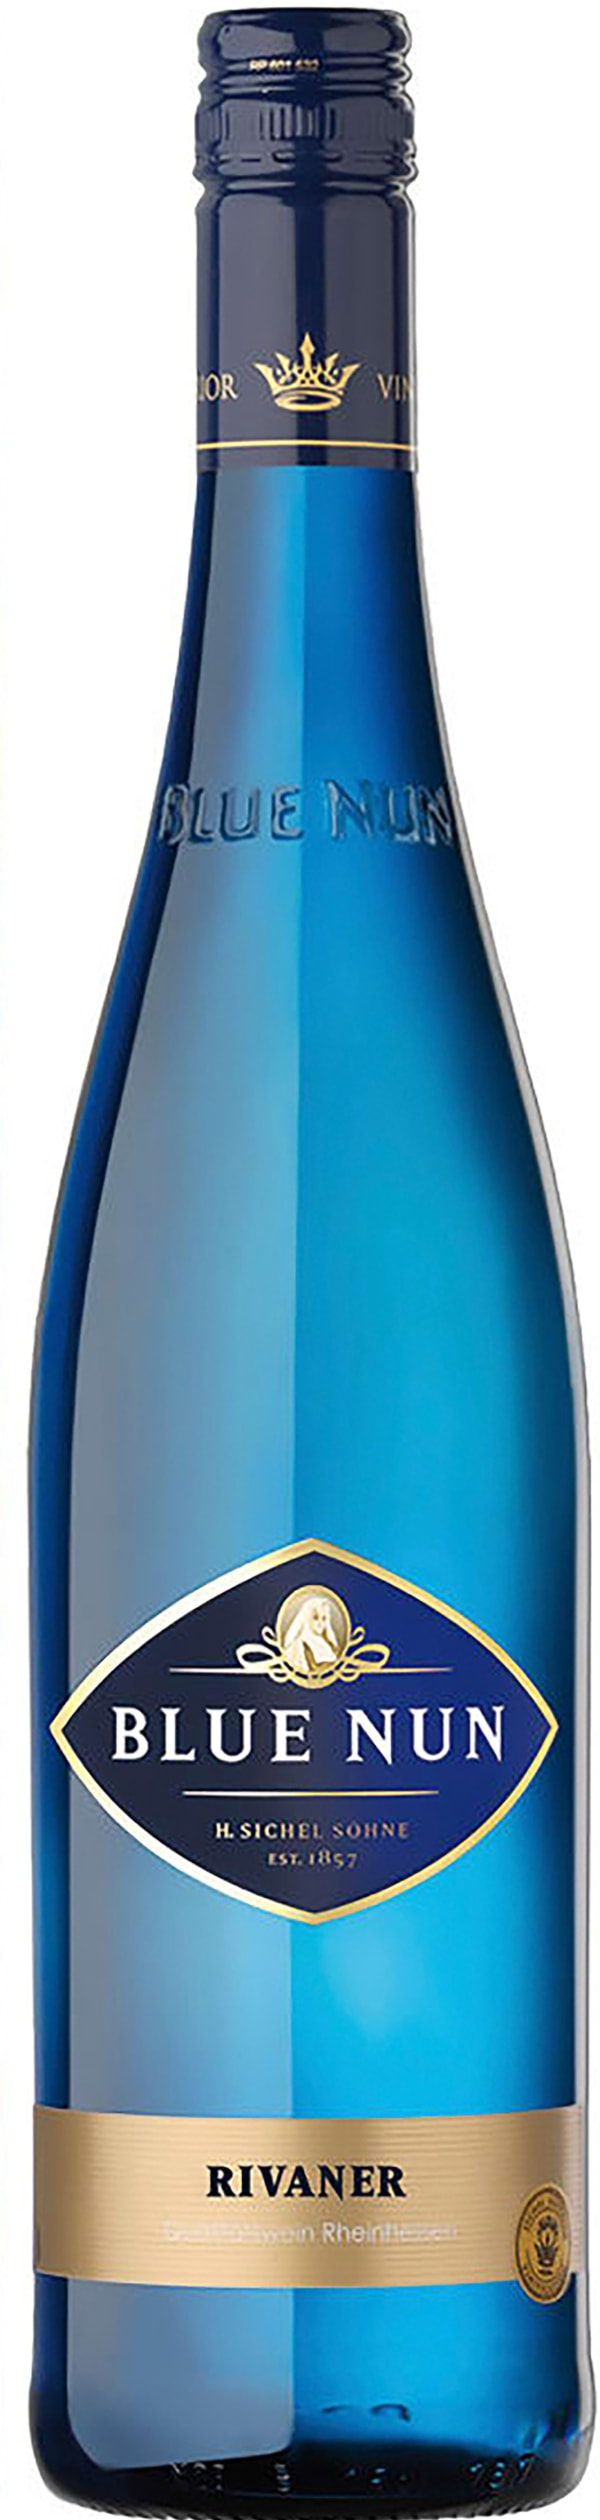 Blue Nun Rivaner 2016